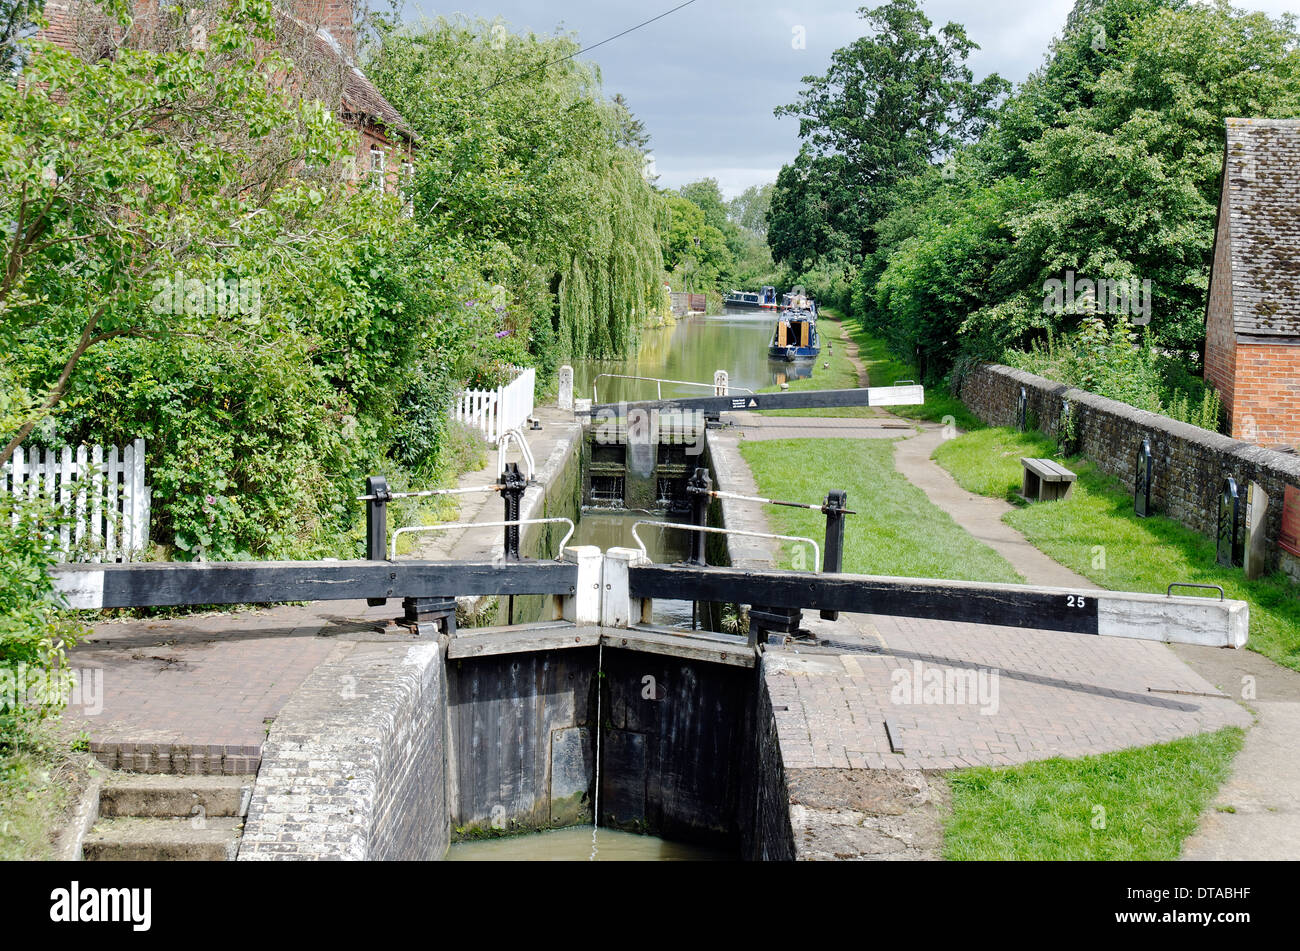 Cropredy Lock on the (South) Oxford Canal - Stock Image